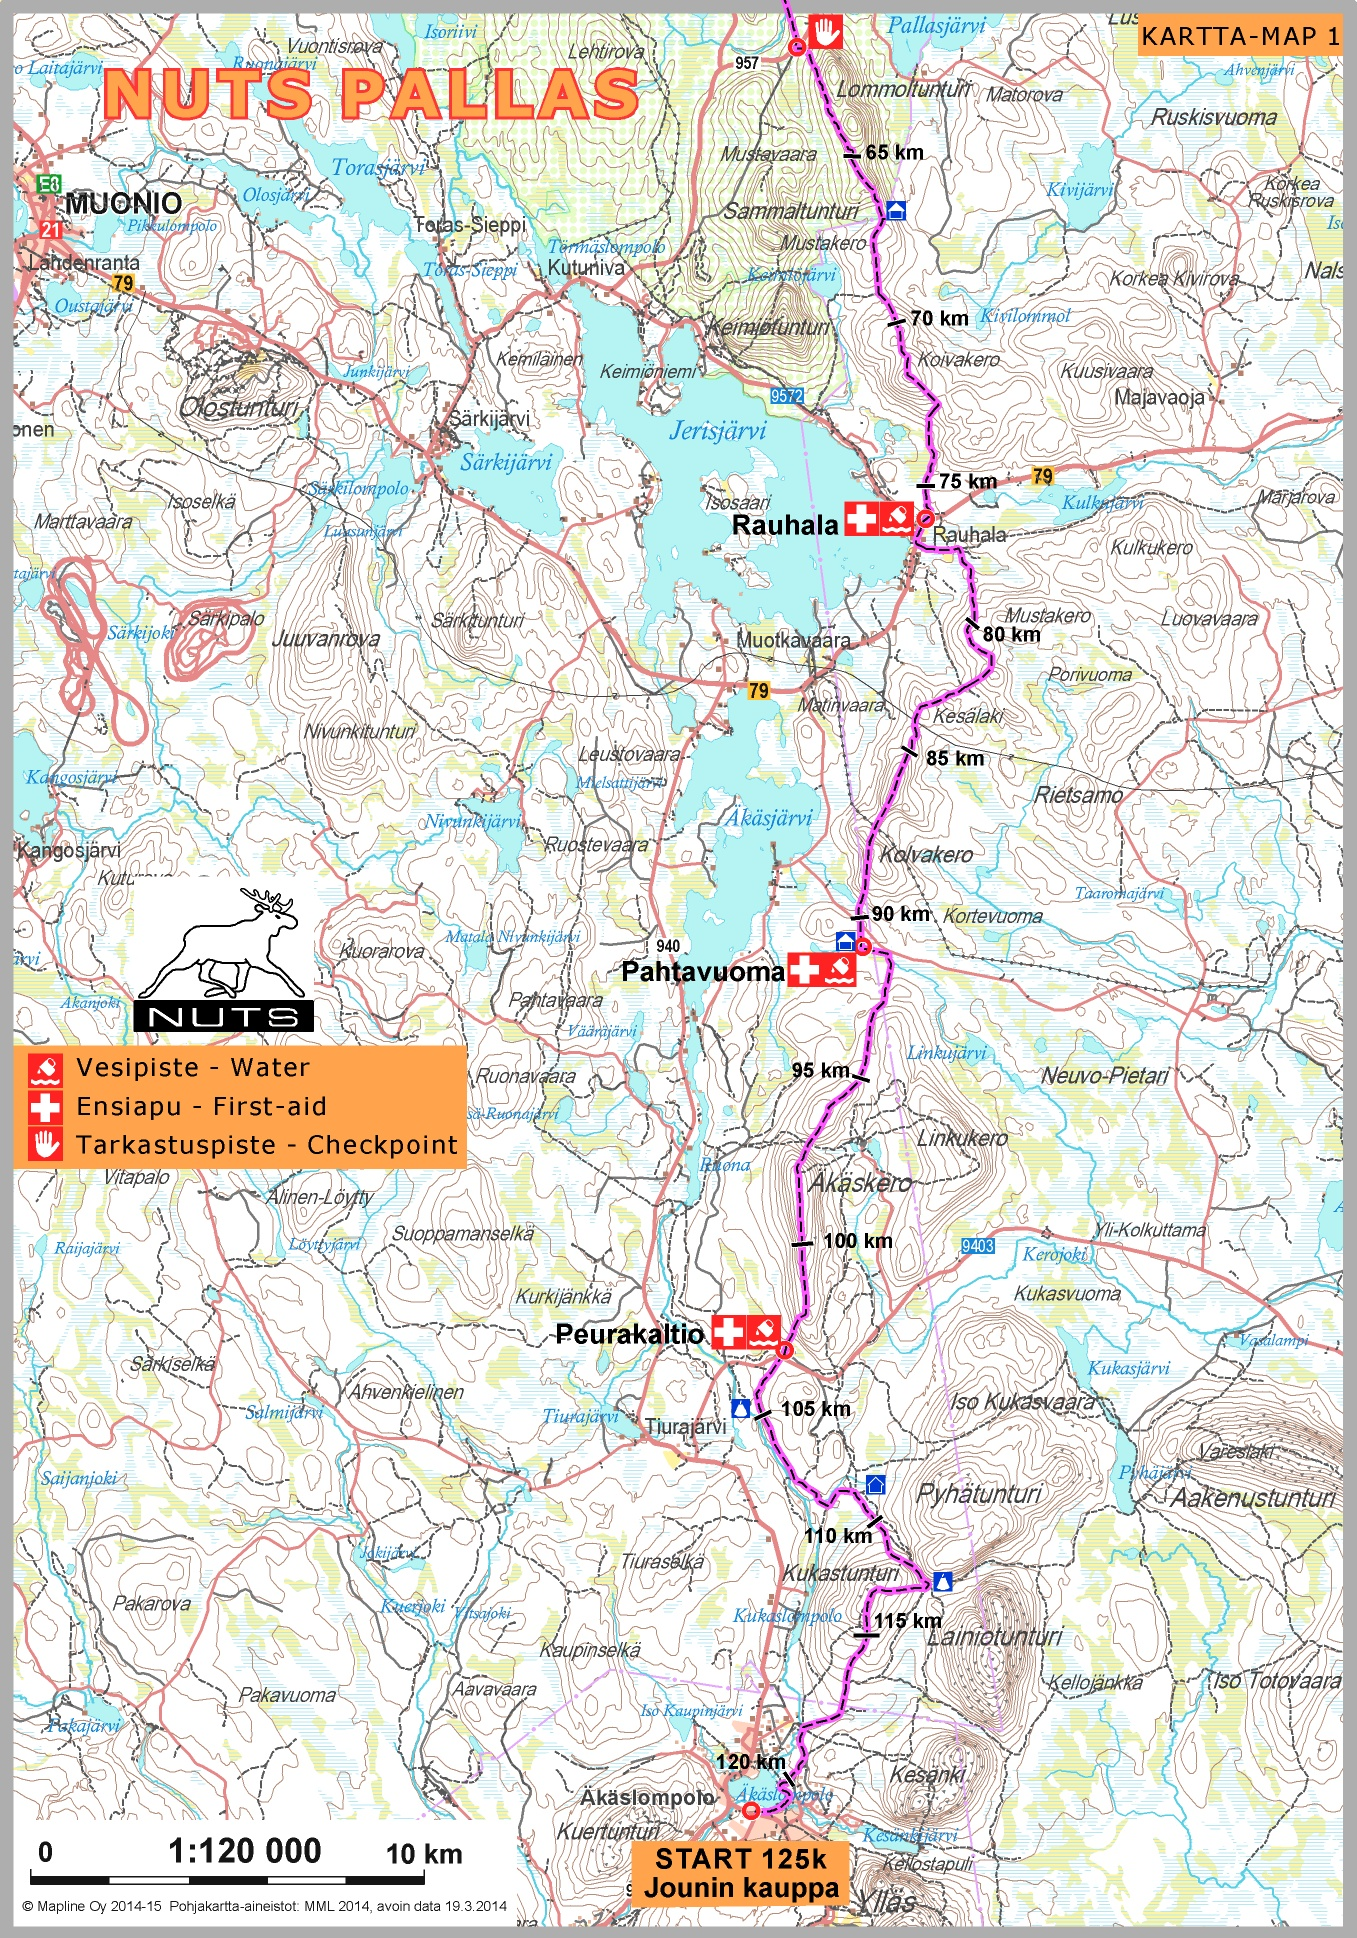 Nuts Pallas Midnight Sun Trail Ultra Route Map Nuts Trail Running